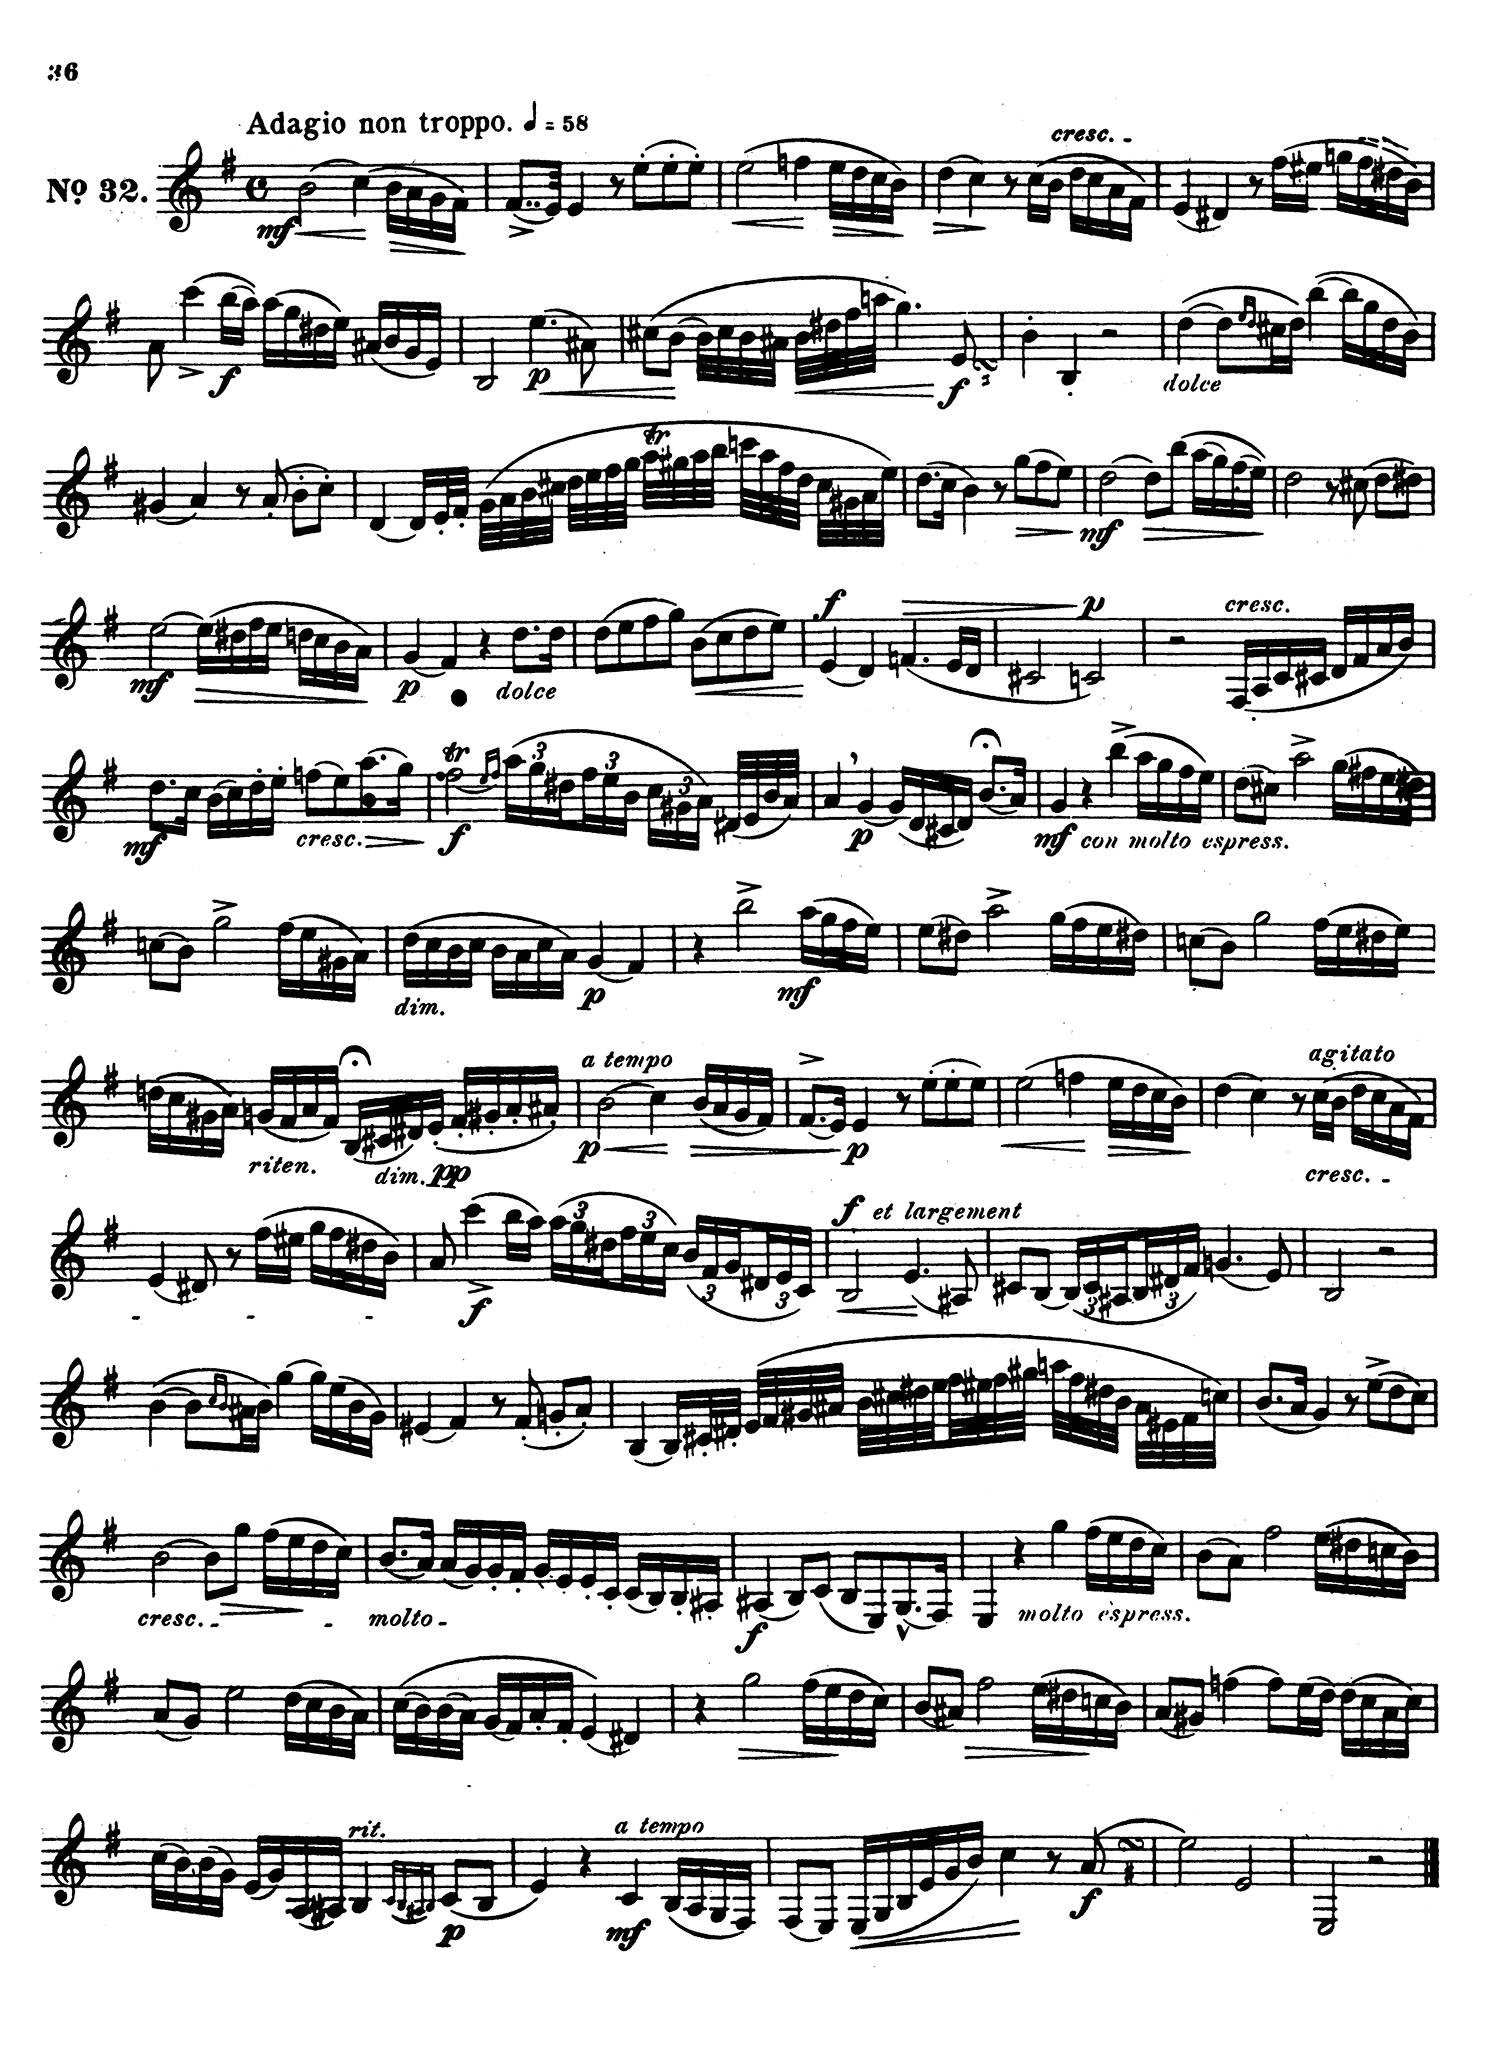 40 Etudes for Clarinet, Book 2 of 2 Page 36